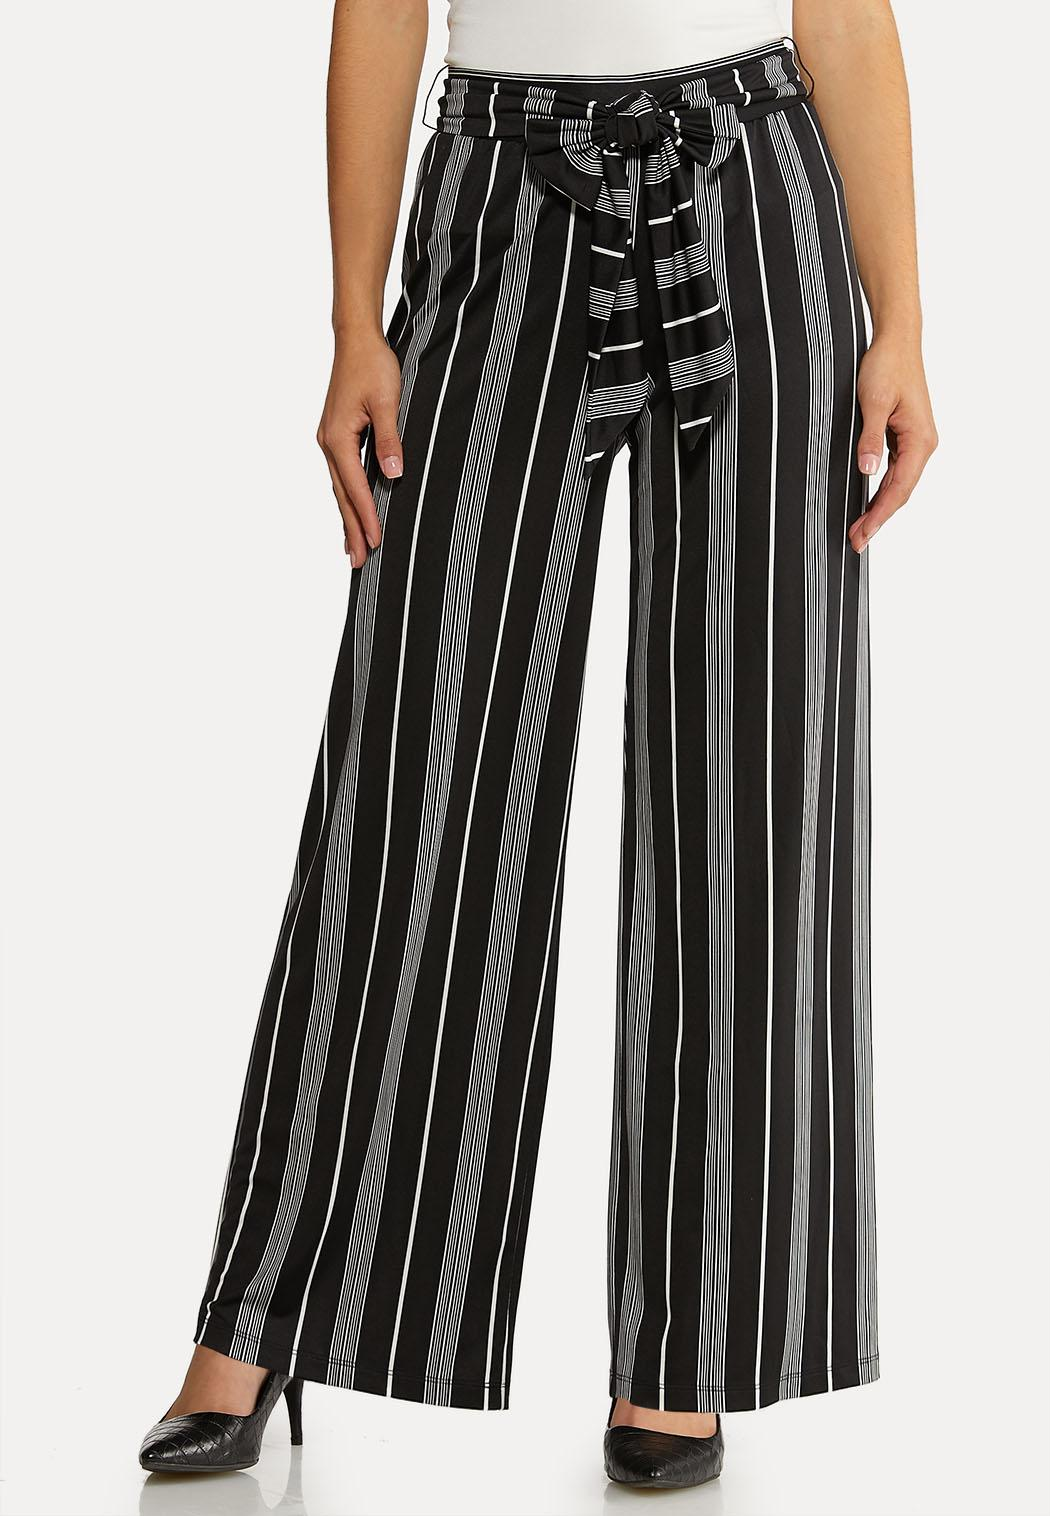 Striped Tie Belted Pants